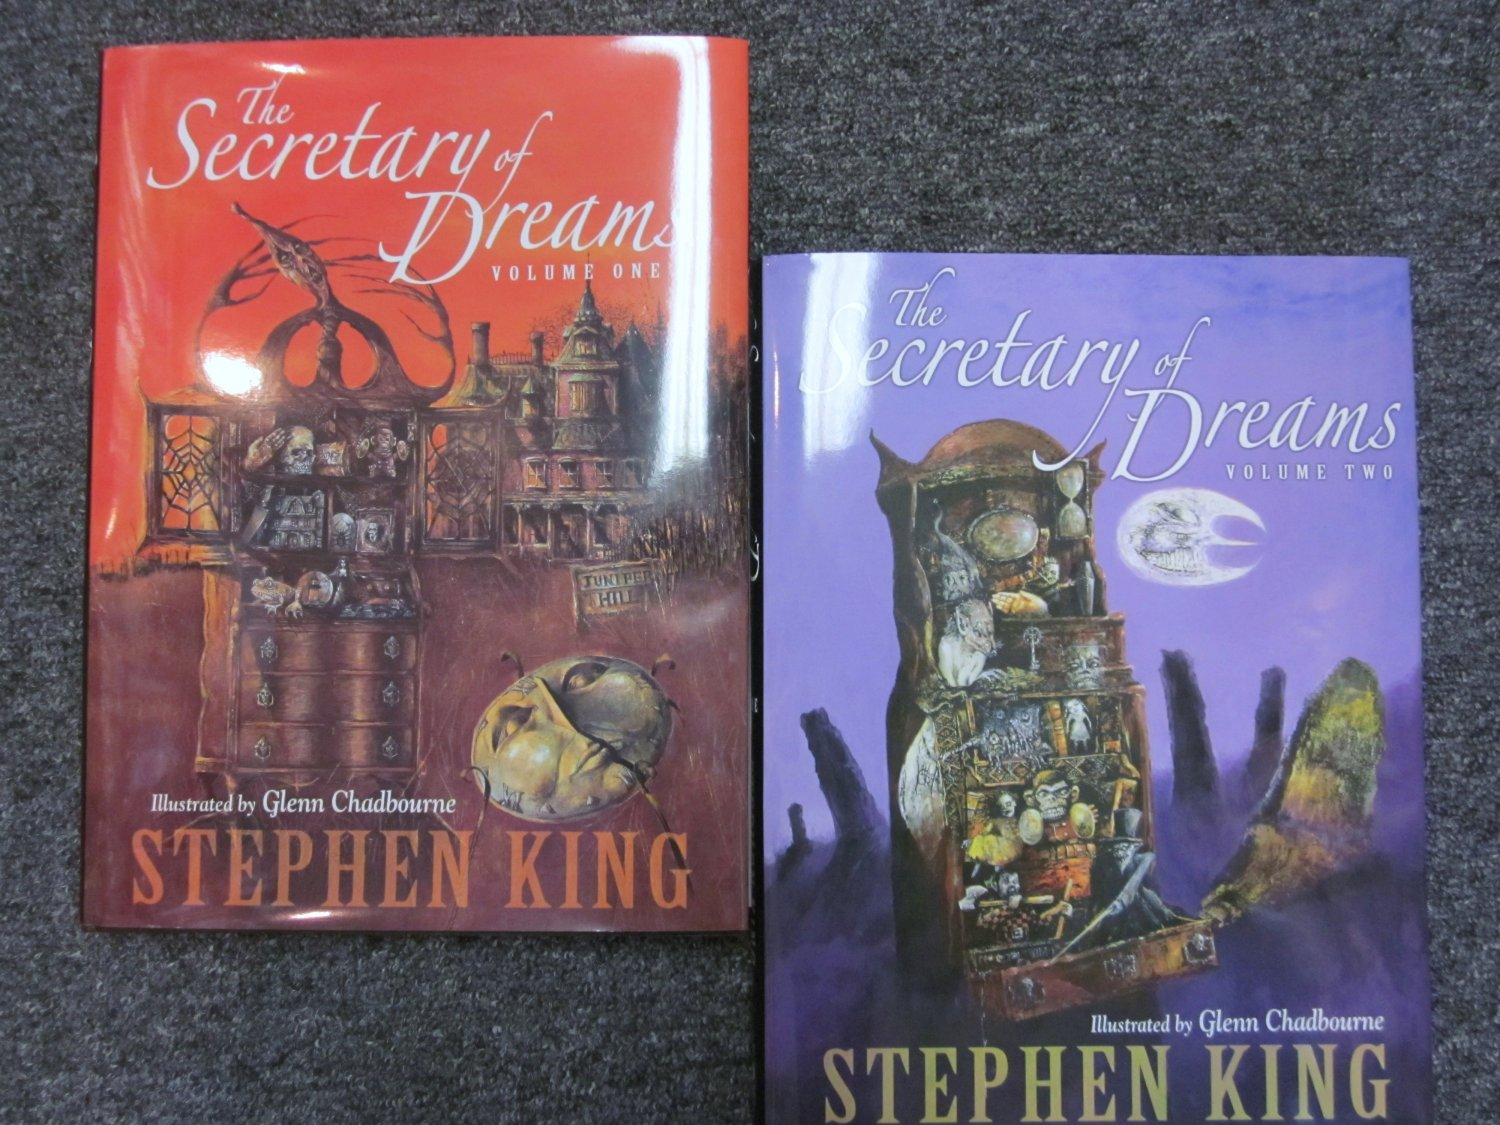 Secretary of Dreams Vol. 1 and 2. Stephen King